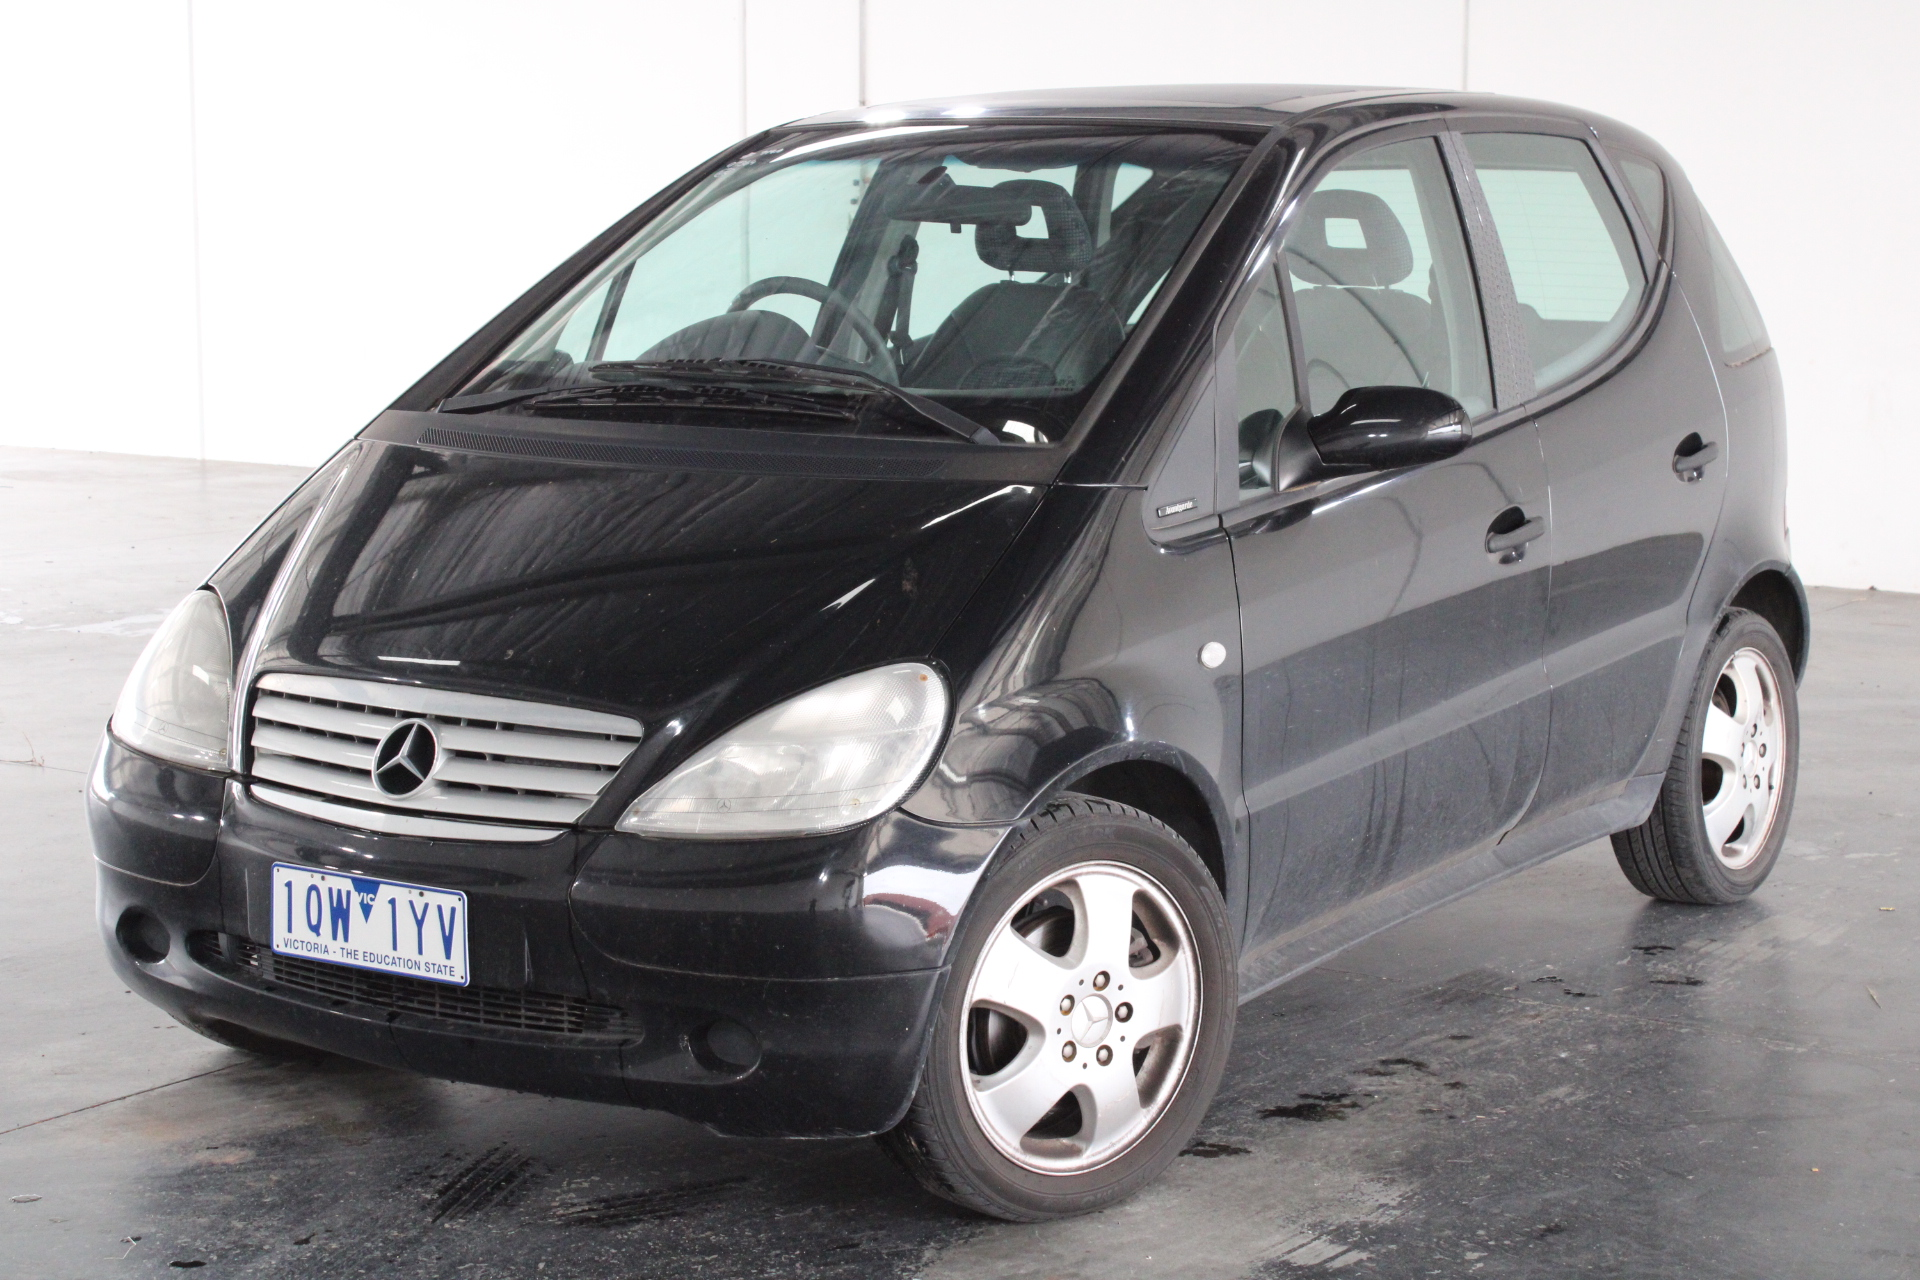 2001 Mercedes Benz A190 Avantgarde W168 Automatic Hatchback